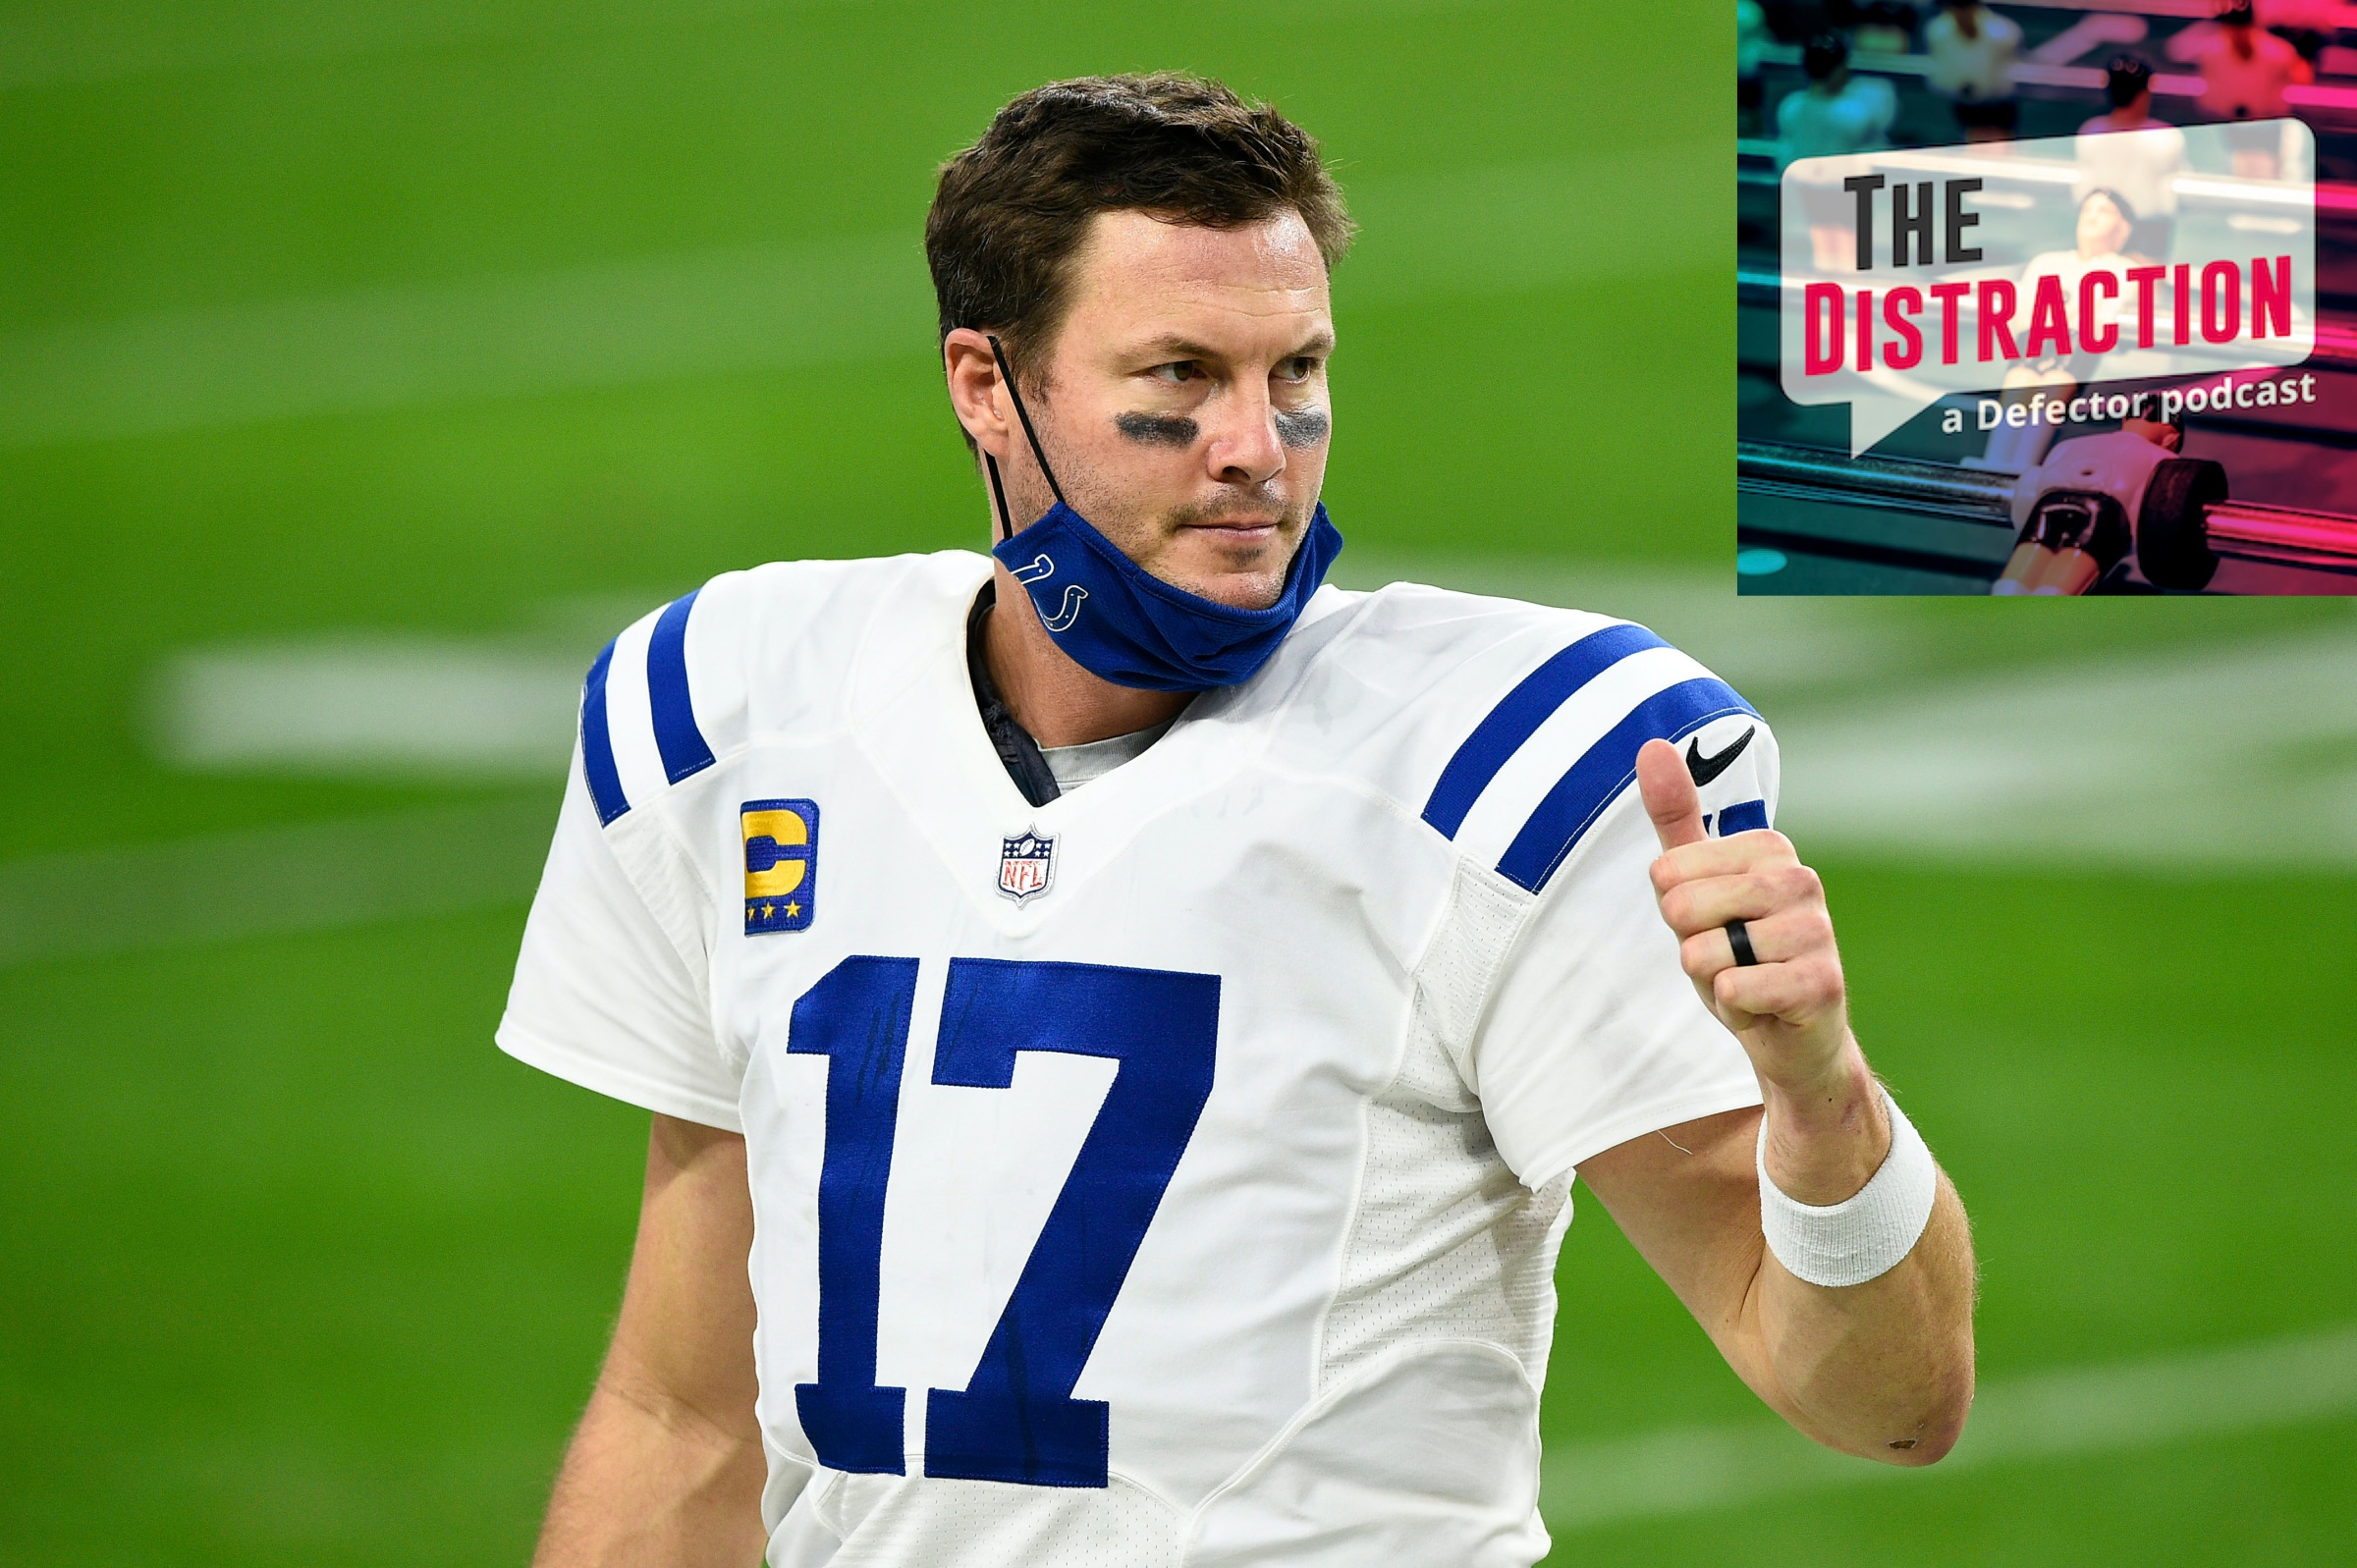 Philip Rivers gives this a thumbs up.